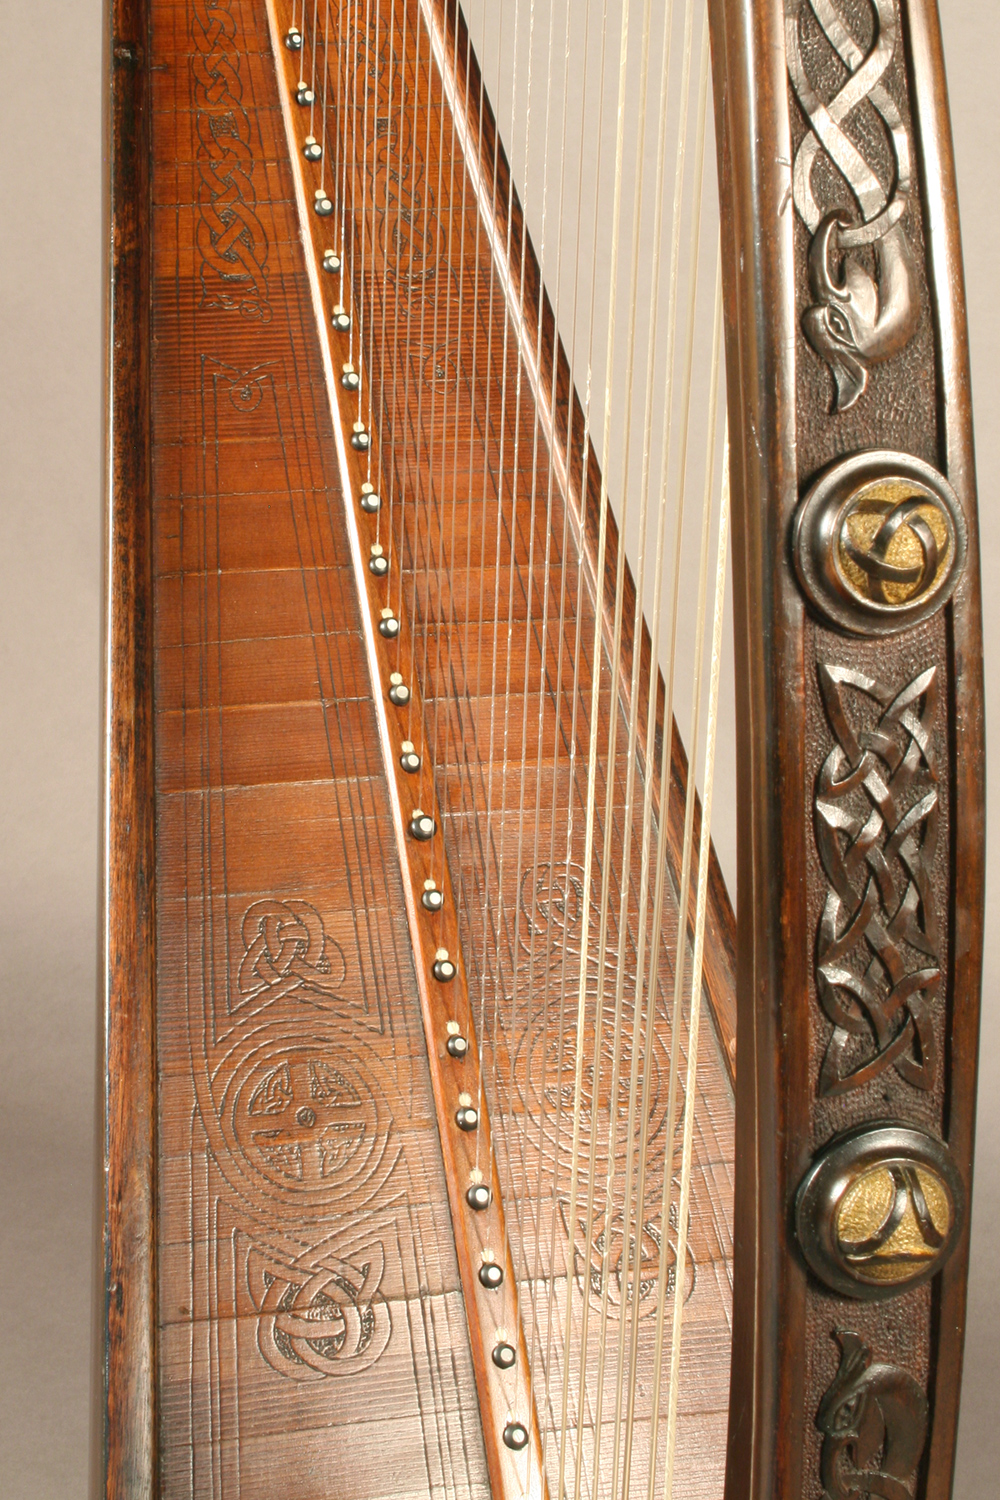 James McFall harp with wood-carved patterns